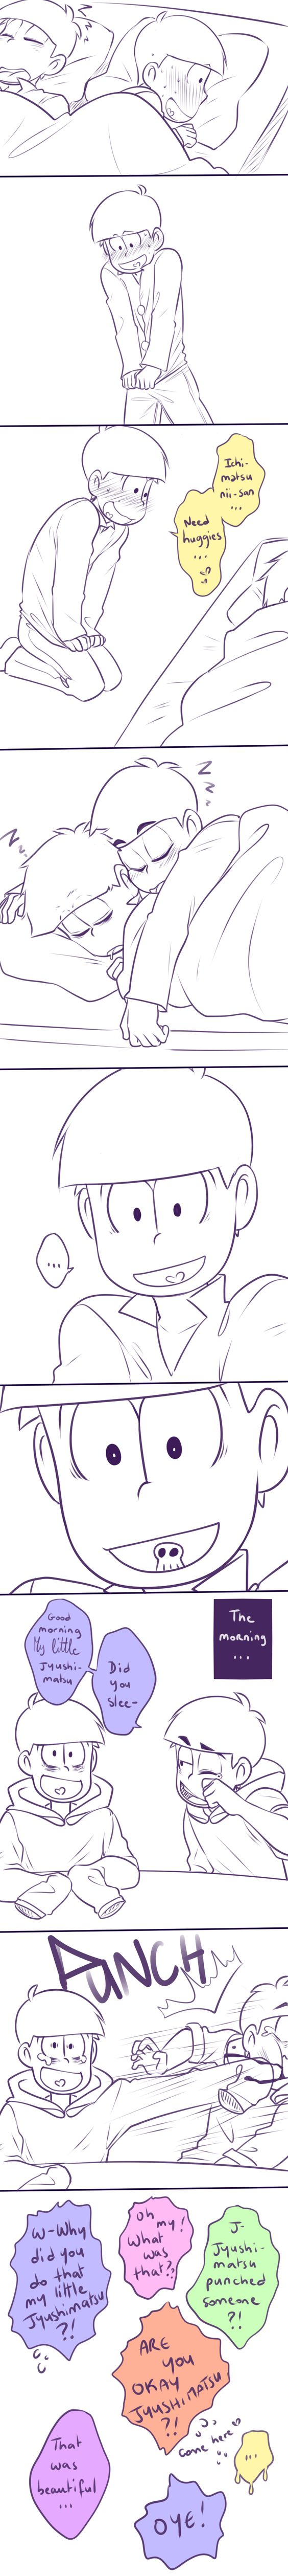 Jealous Jyushimatsu by Kyoichii on DeviantArt